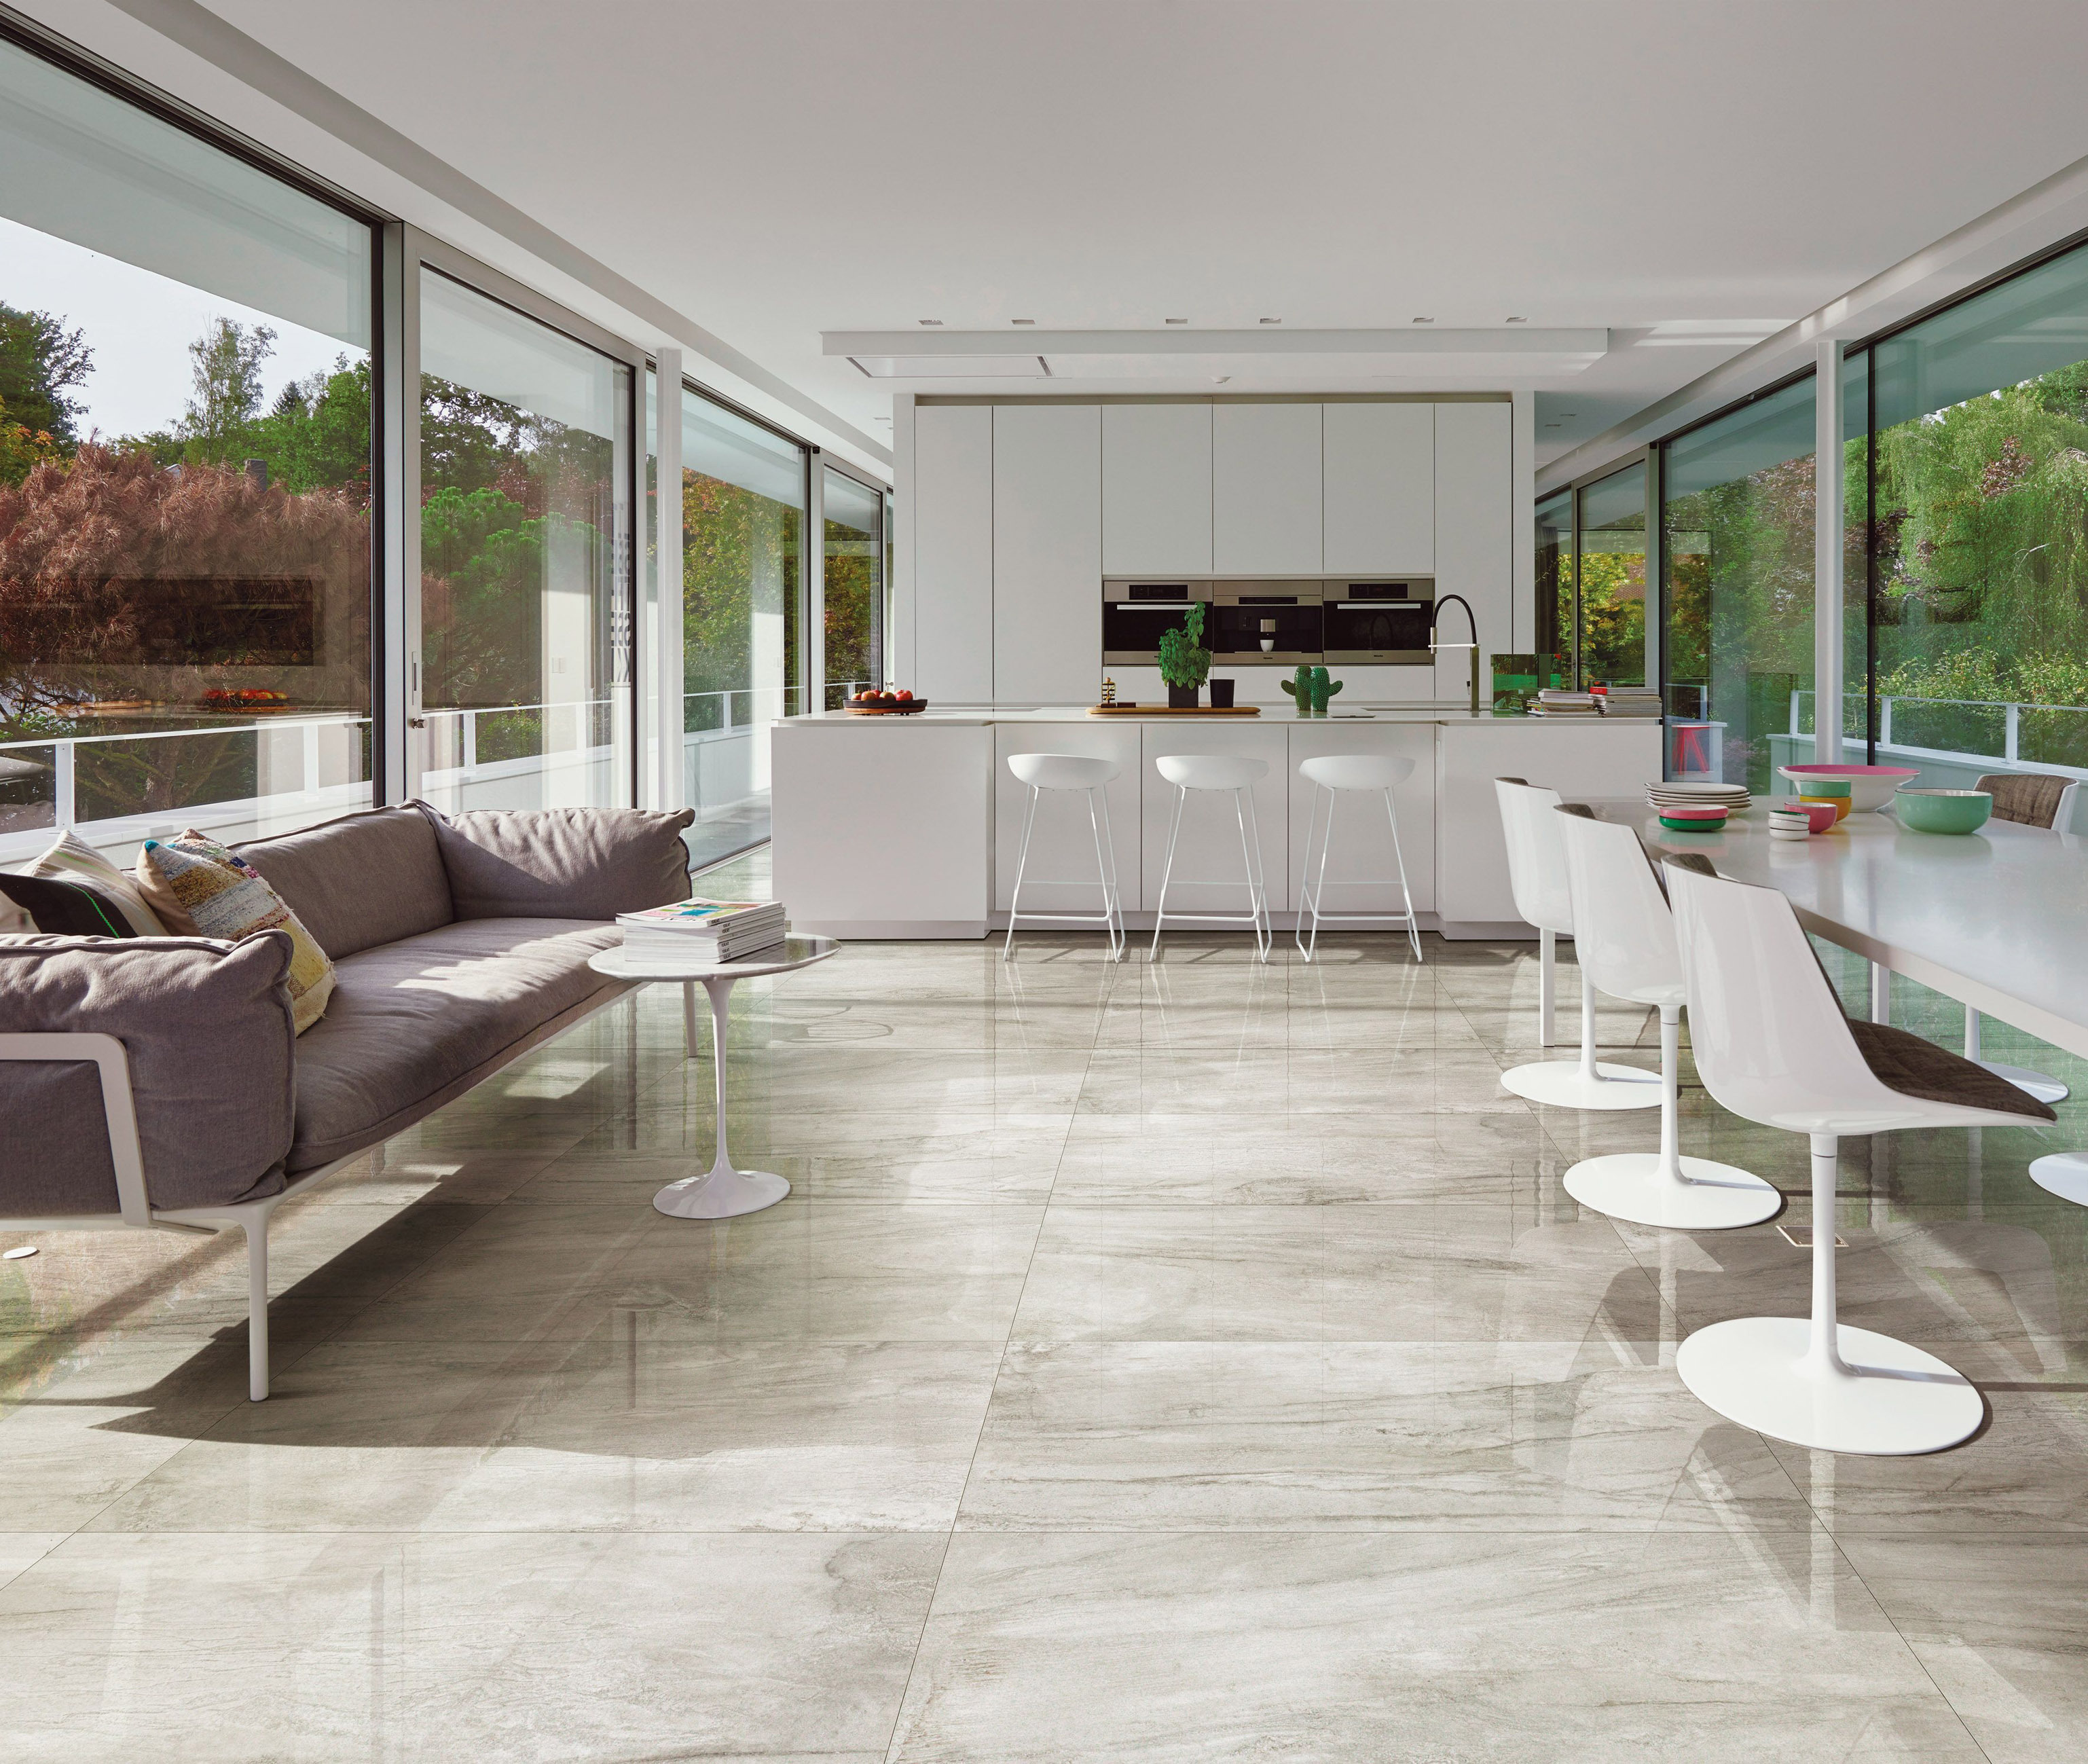 Hard Wearing Porcelain And Stone Effect Tiles Can Withstand The Daily Trials Of Family